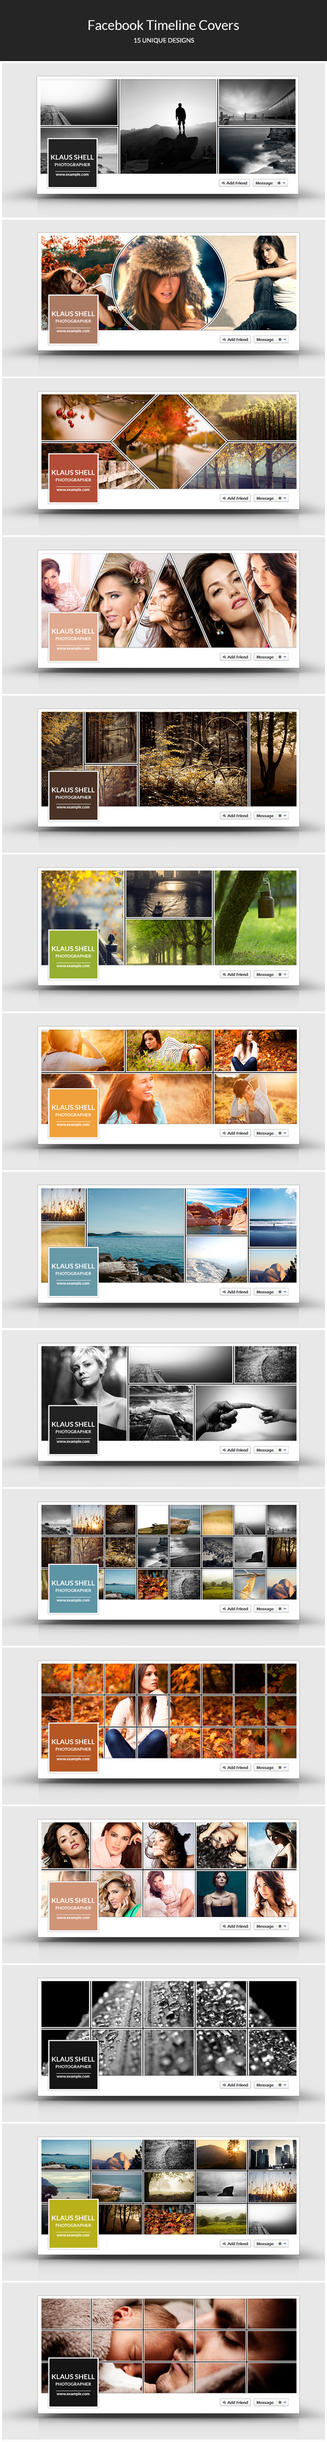 Facebook Timeline Covers by shapshapy